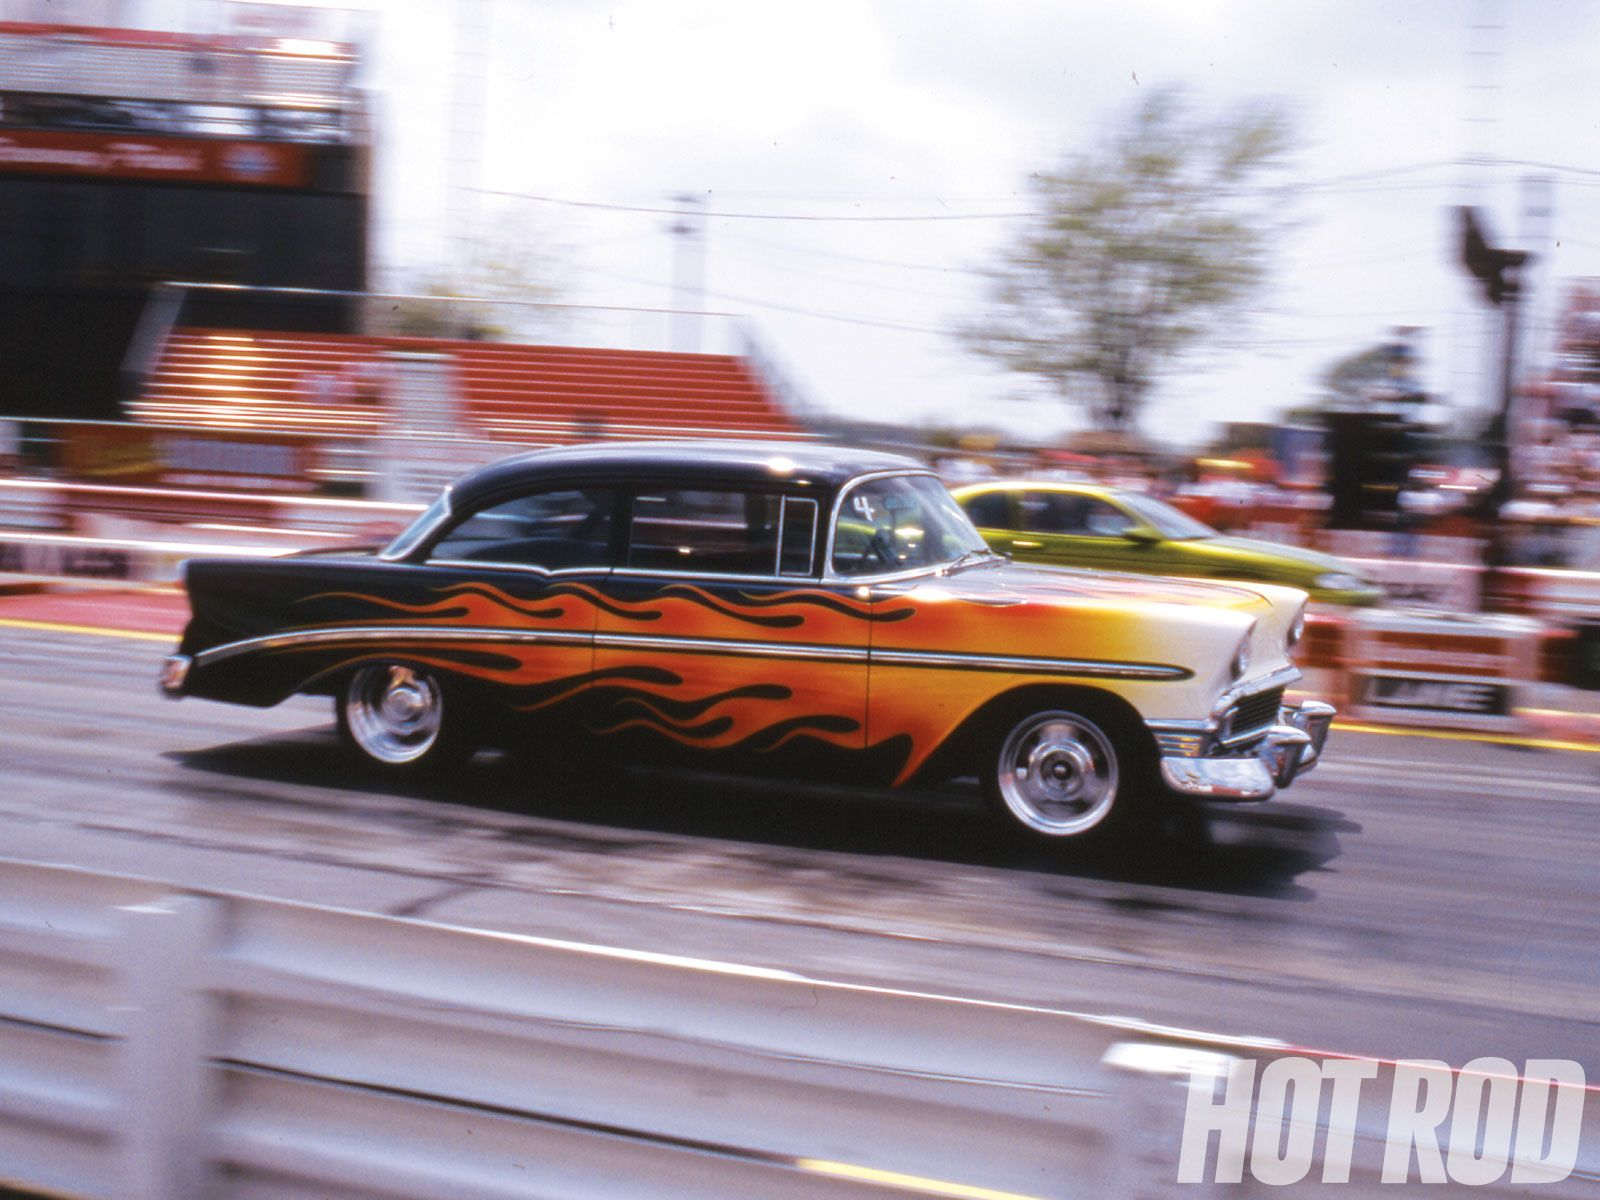 1955 Chevy | Cars Flames | Pinterest | Classic trucks and Cars